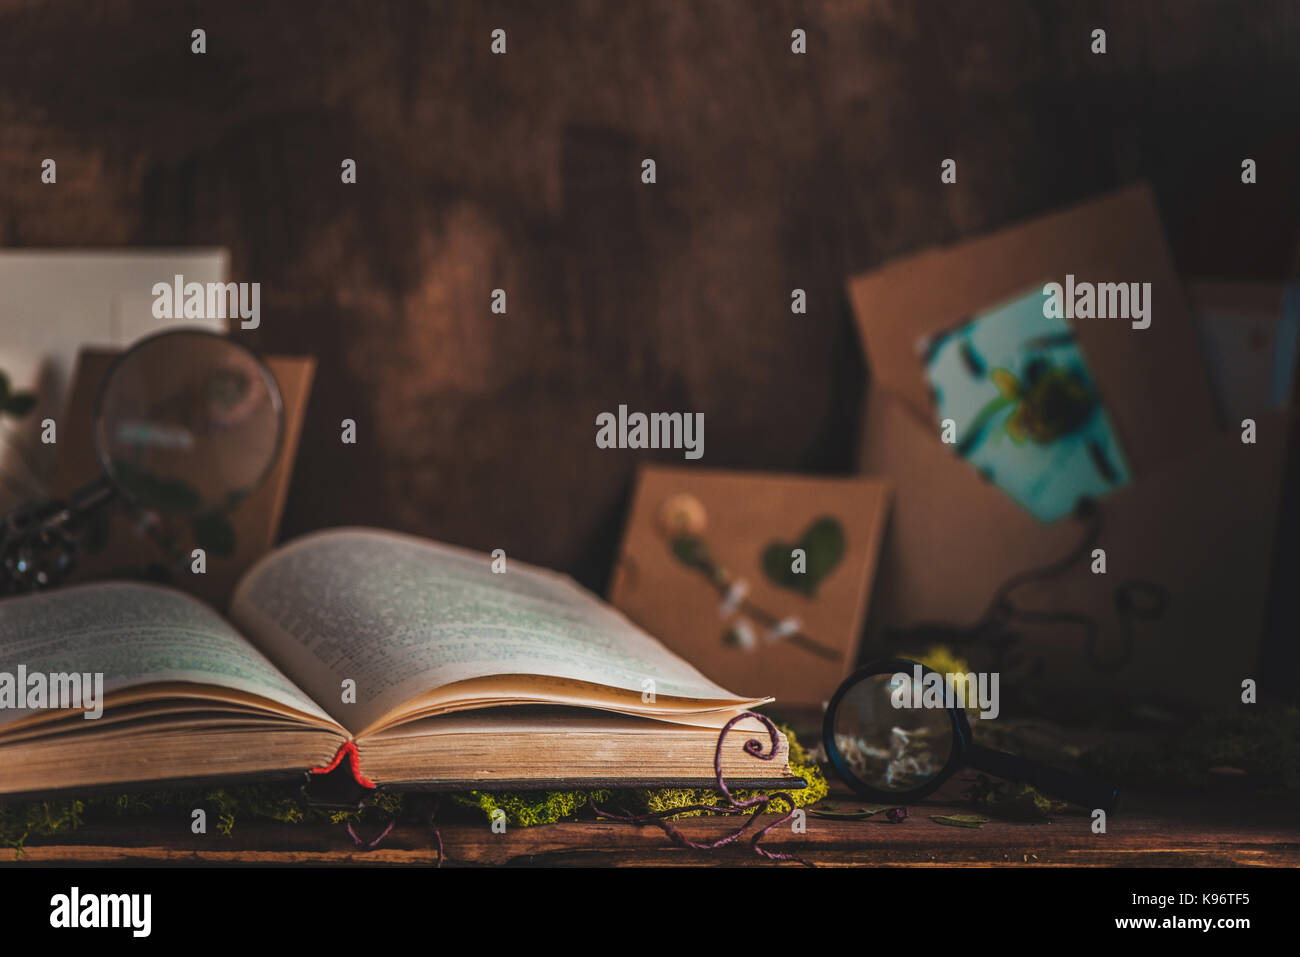 Warm still life with an open book, scissors, dried plants, moss and craft paper envelopes - Stock Image